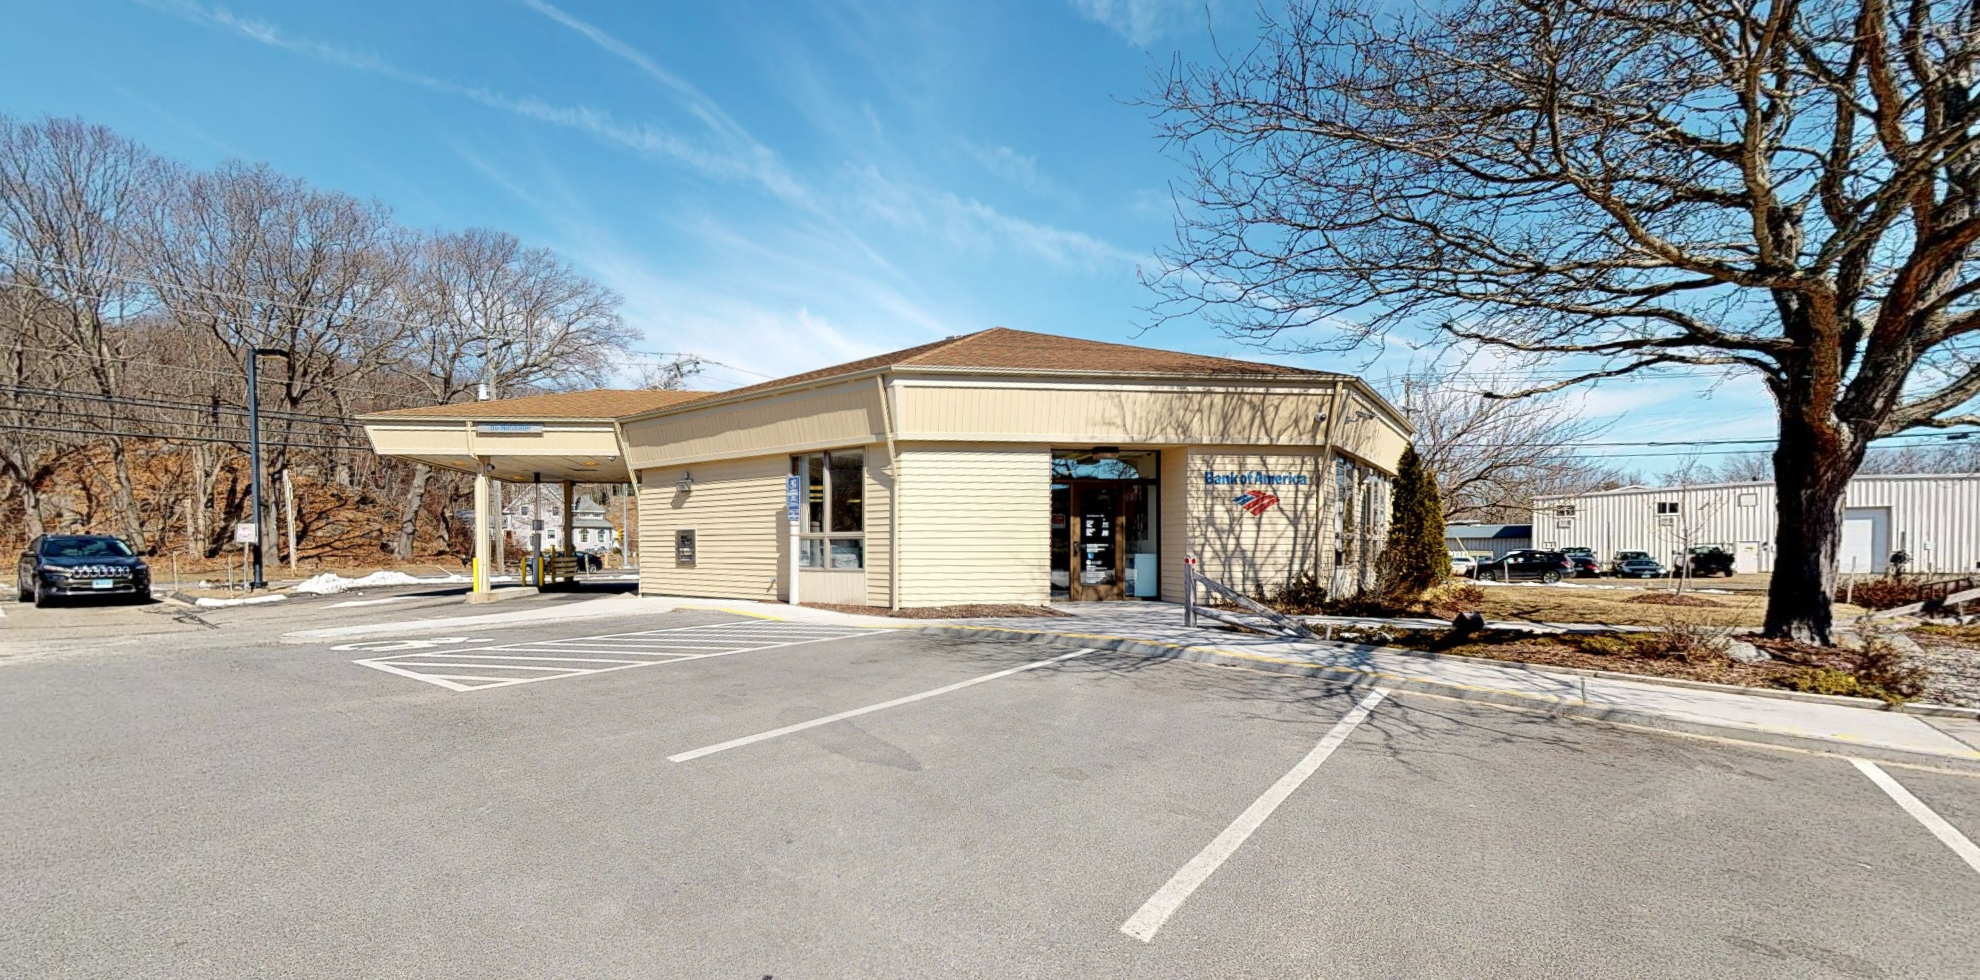 Bank of America financial center with walk-up ATM   125 Westbrook Rd, Essex, CT 06426